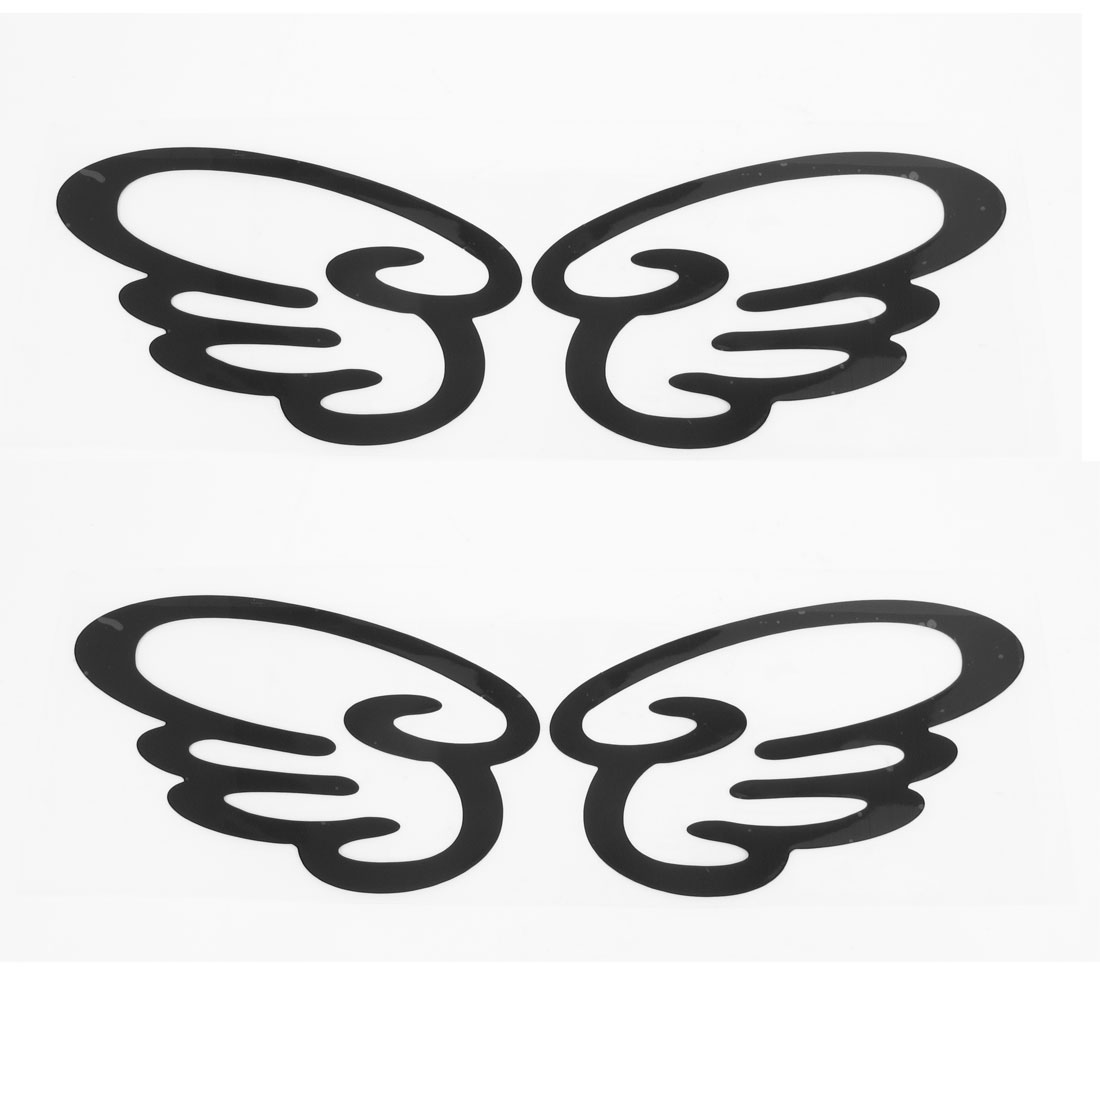 2 Pairs Black Plastic Wing Shape Car Motorcycle Decal Sticker Reflective